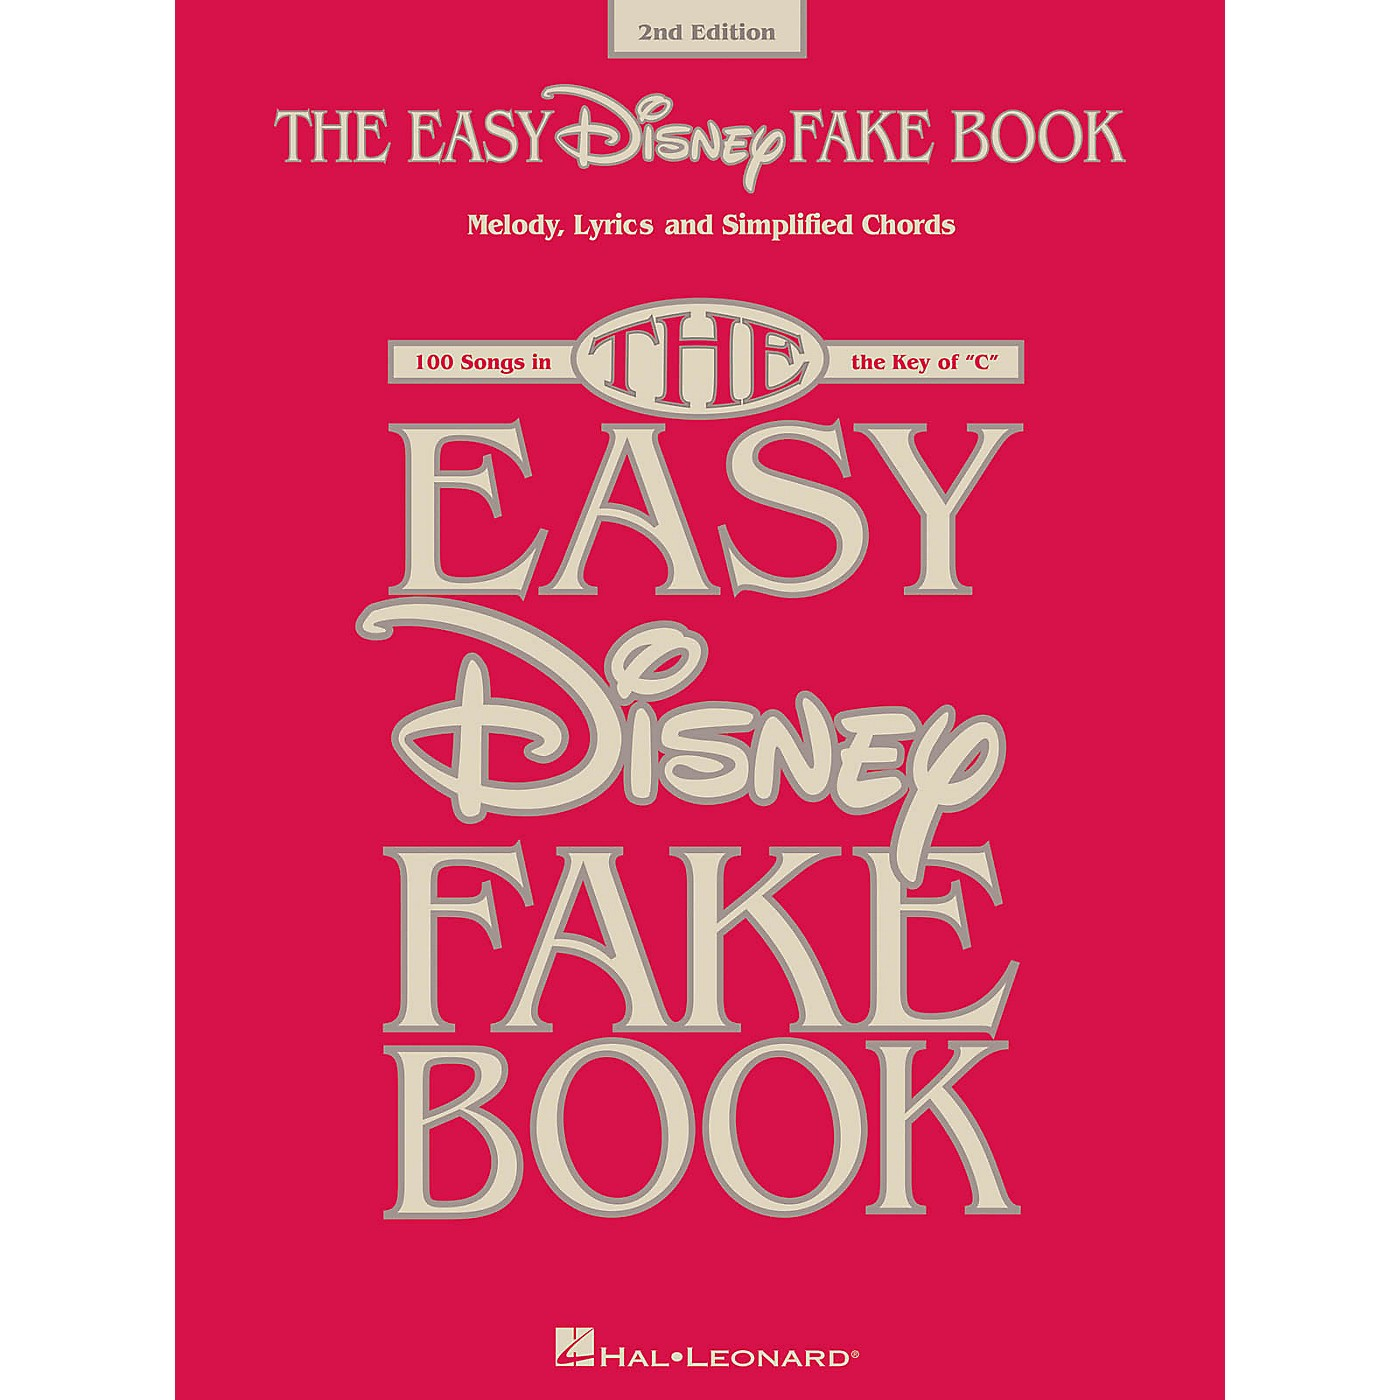 Hal Leonard The Easy Disney Fake Book - 2nd Edition (100 Songs in the Key of C) thumbnail